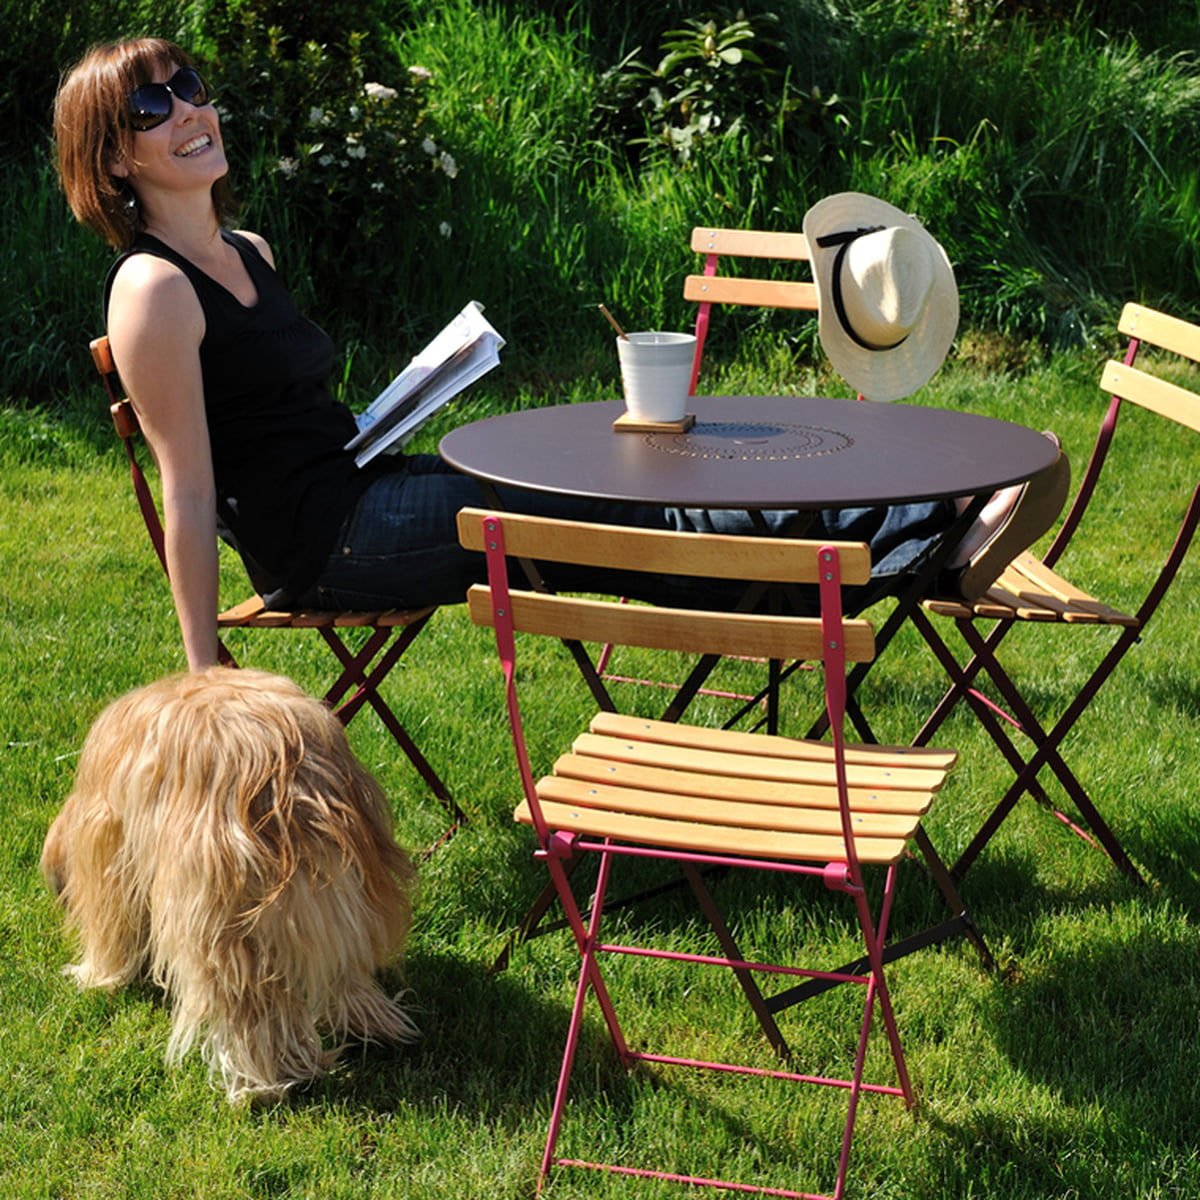 The Bistro natural folding chair by Fermob